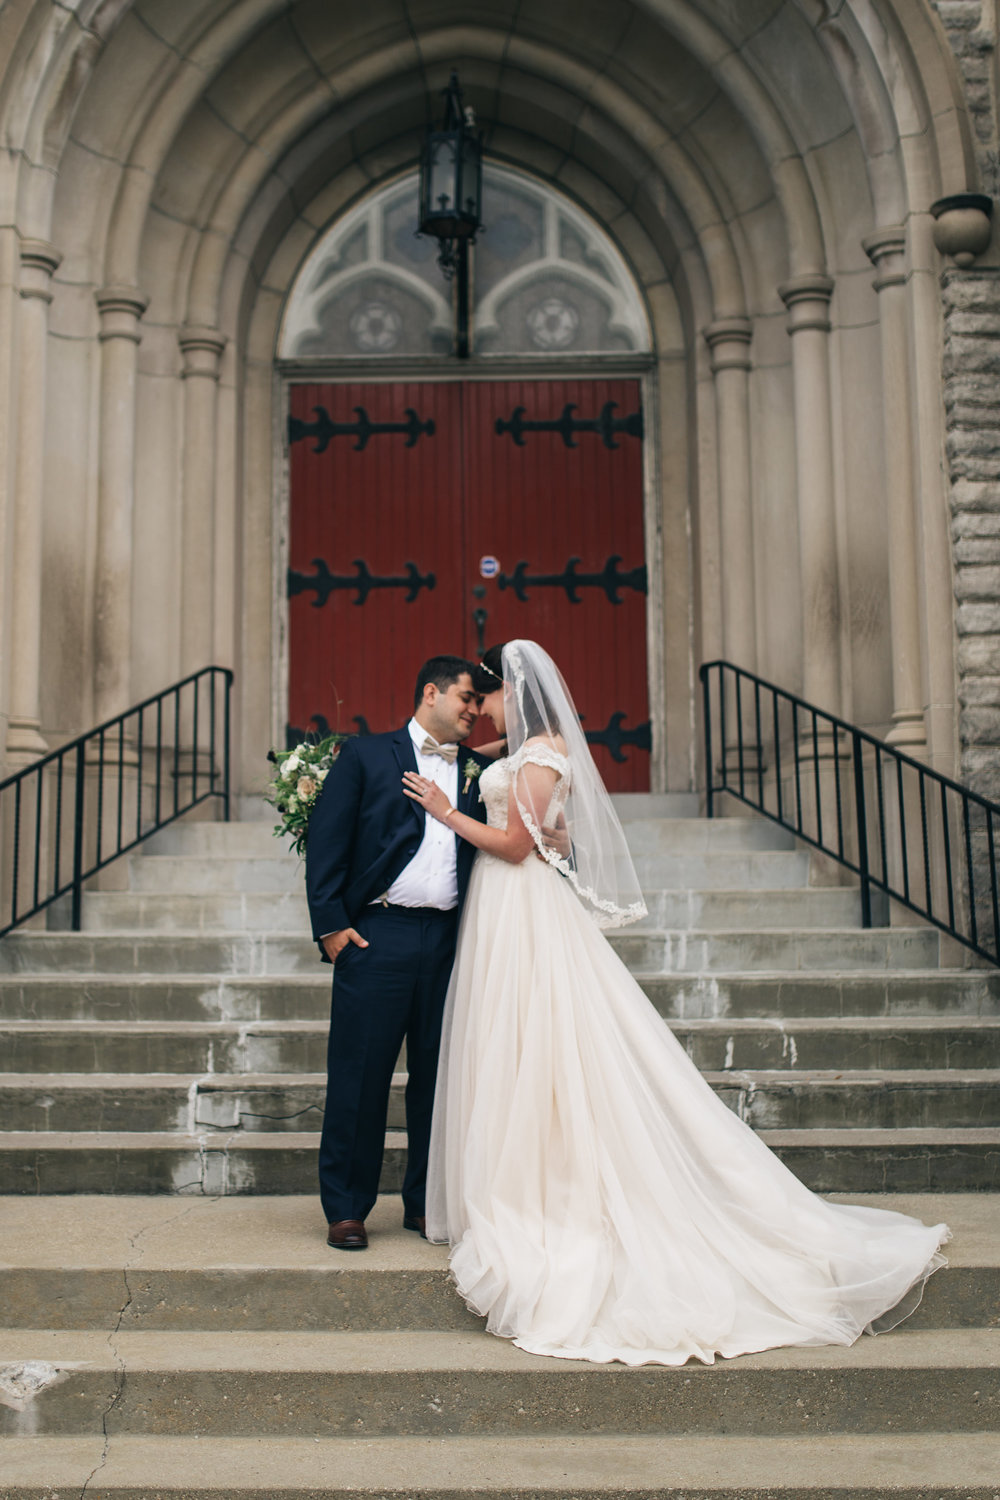 Northwest Ohio Wedding Photographers Capture First Look Experience with Couple at Church on Wedding Day